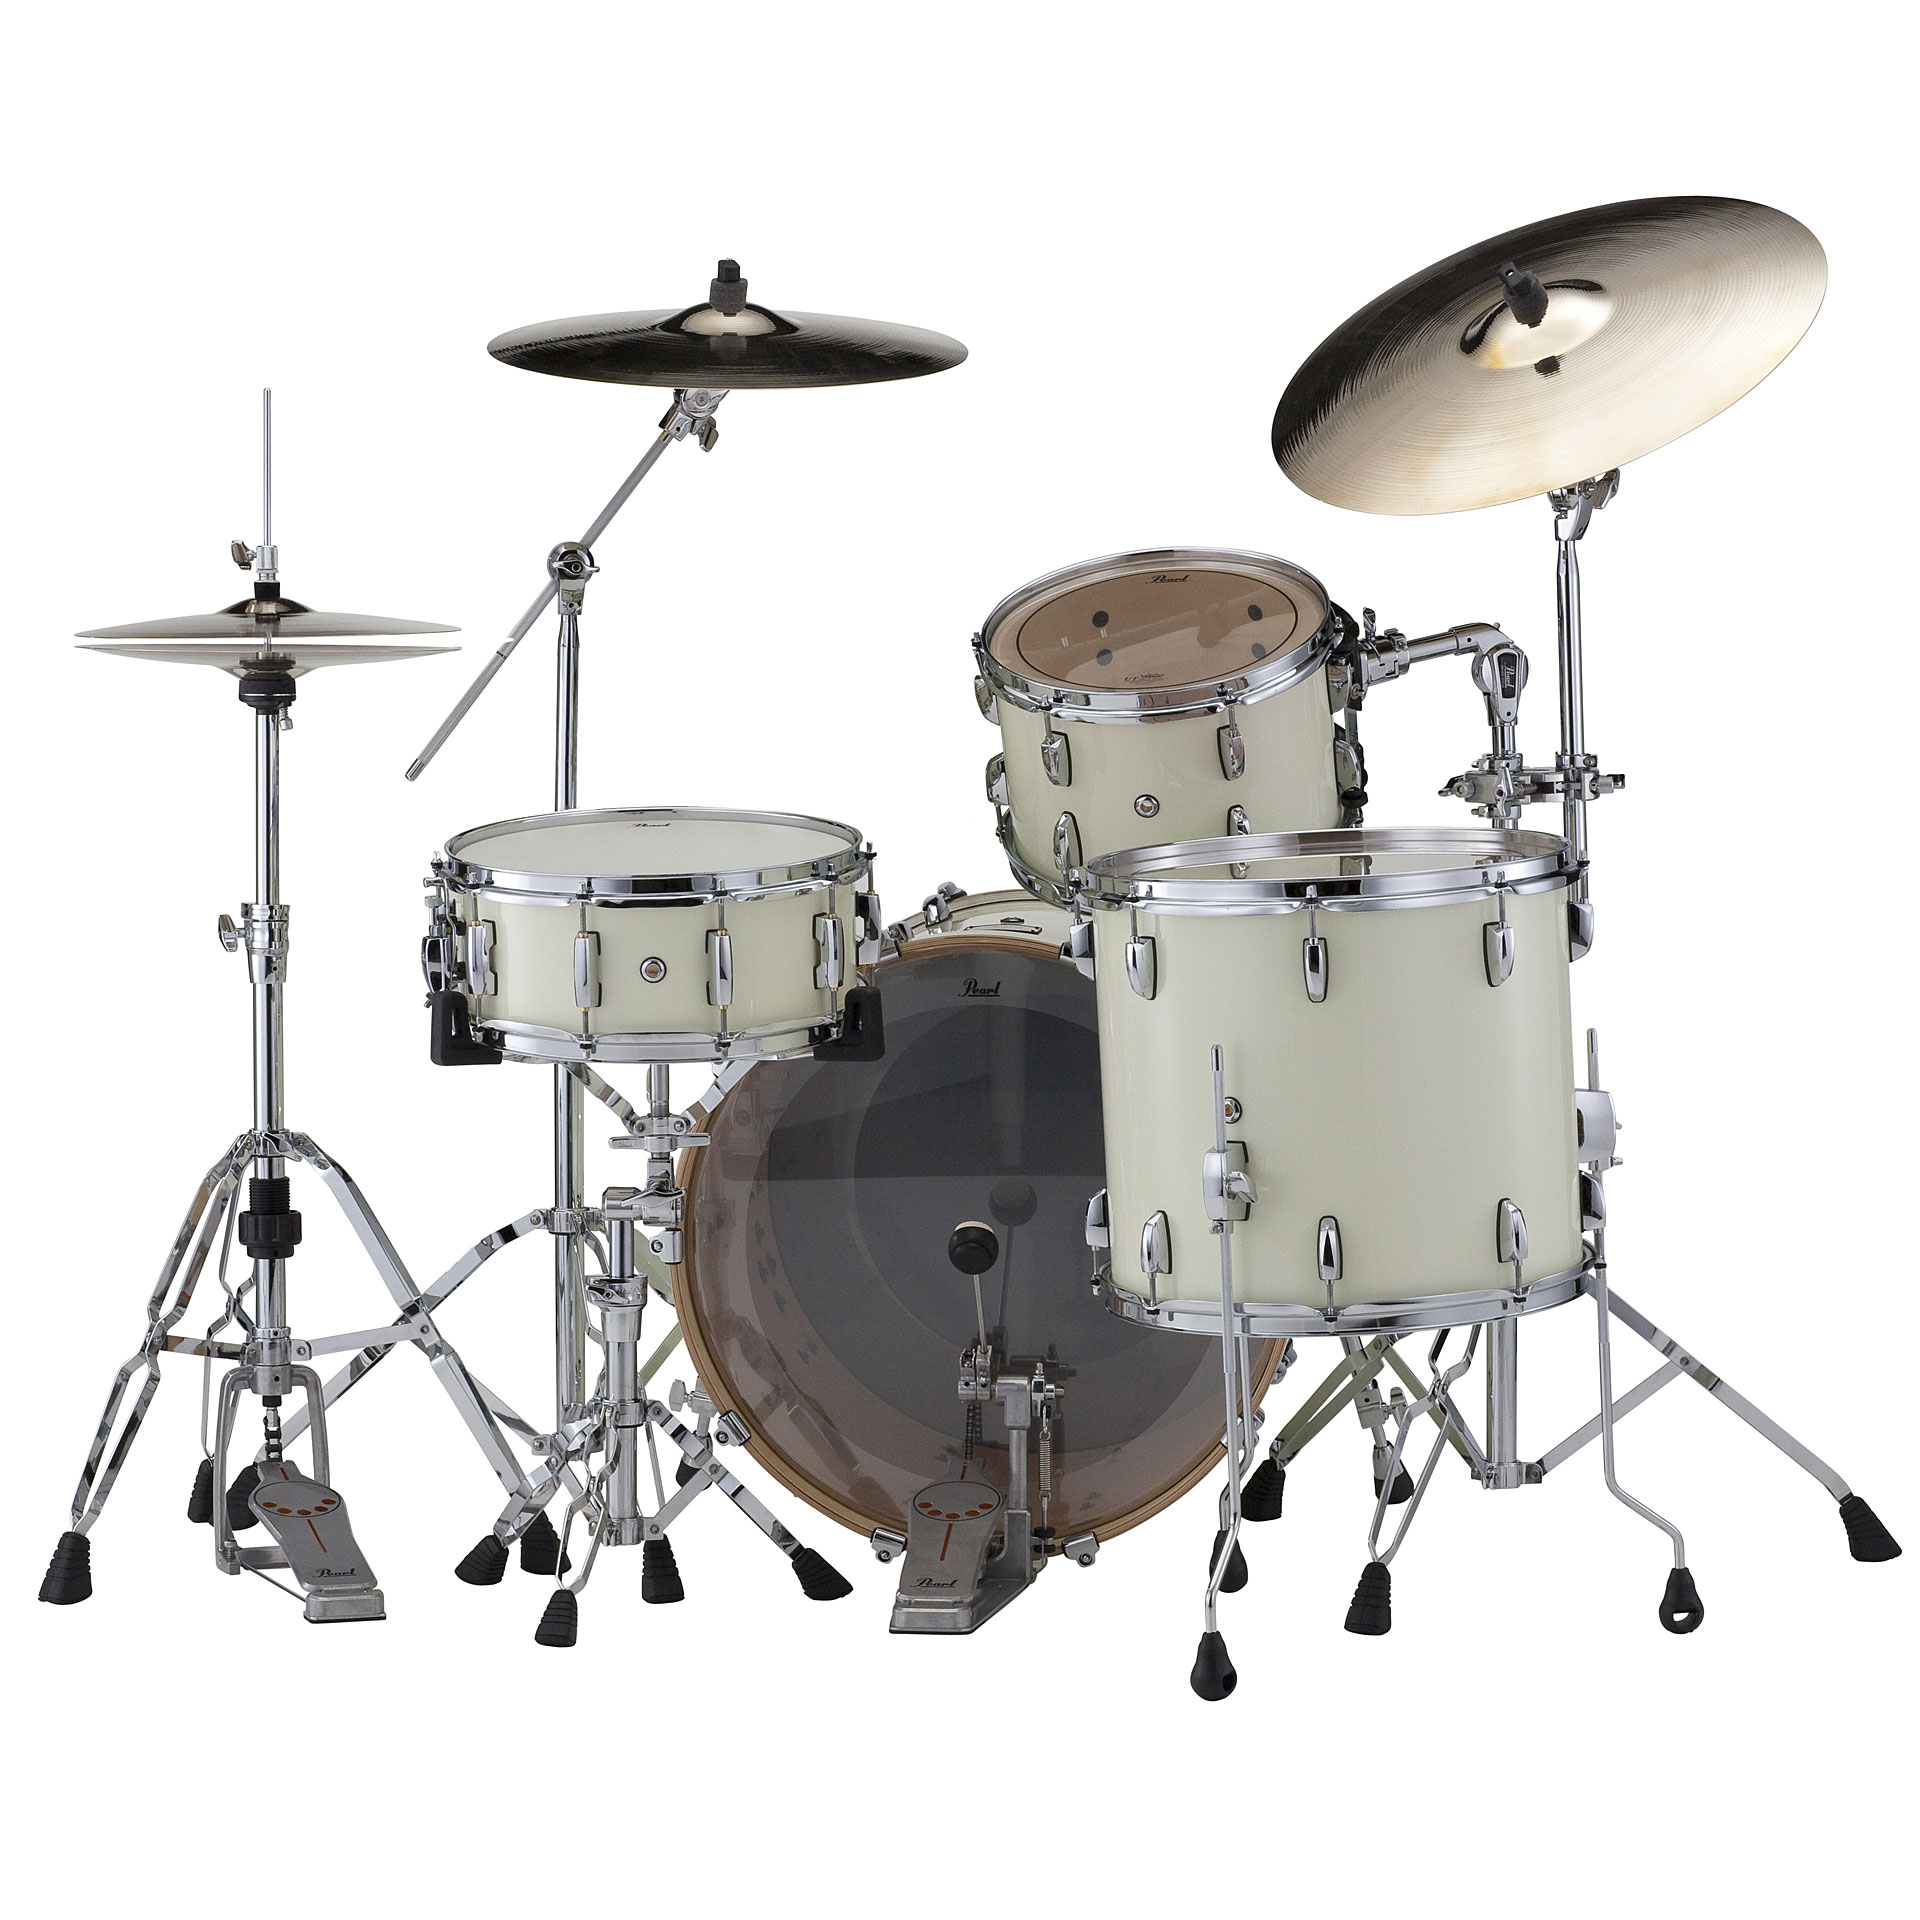 Pearl session studio classic ssc924xsdp c106 drum kit for Classic house drums